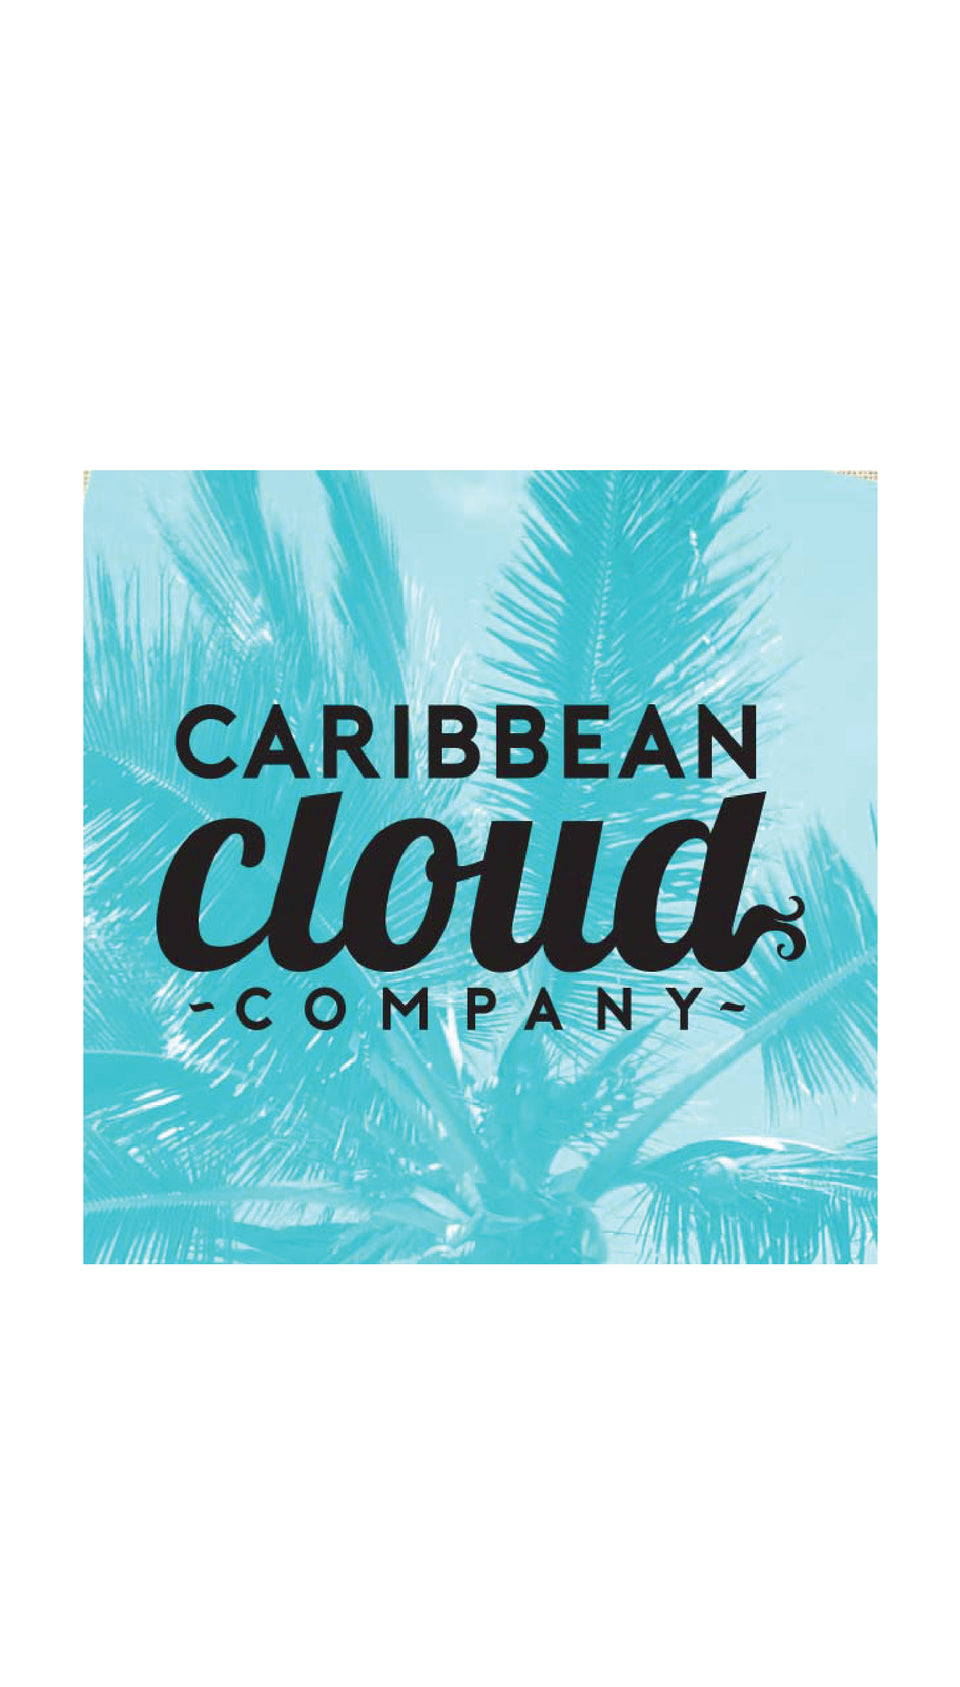 Carribean Cloud